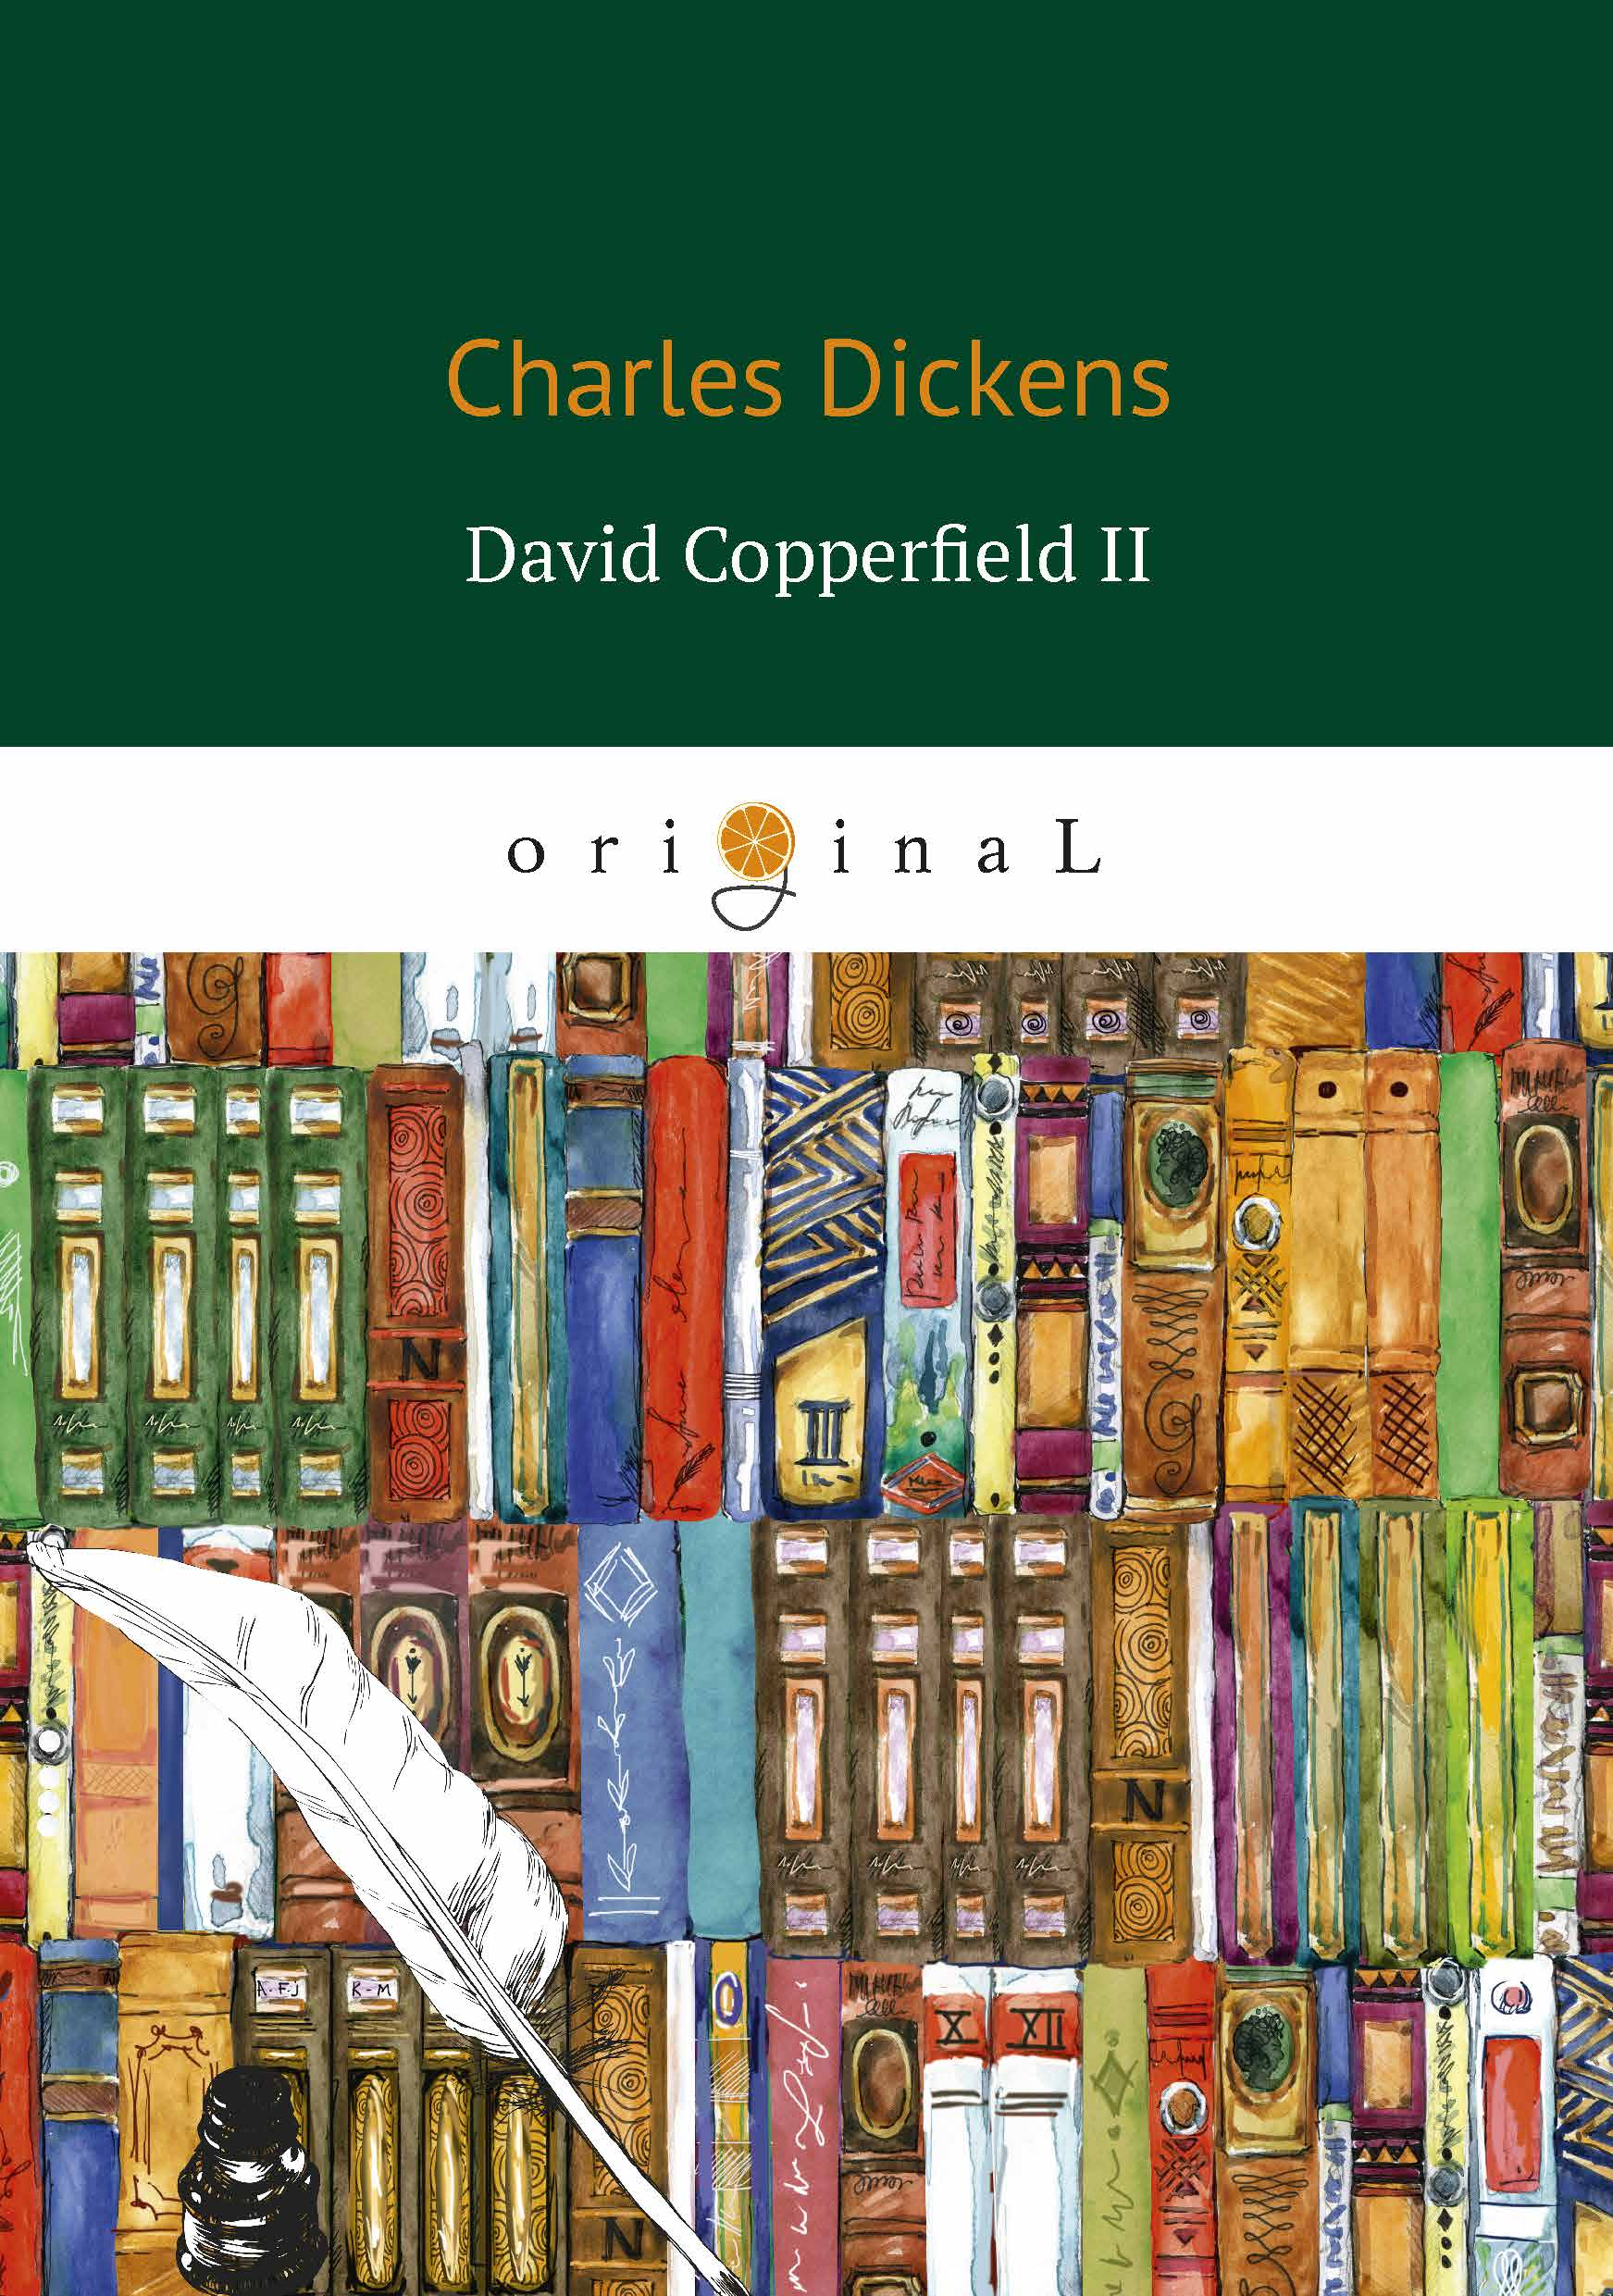 Dickens C. David Copperfield II his story of re negotiation